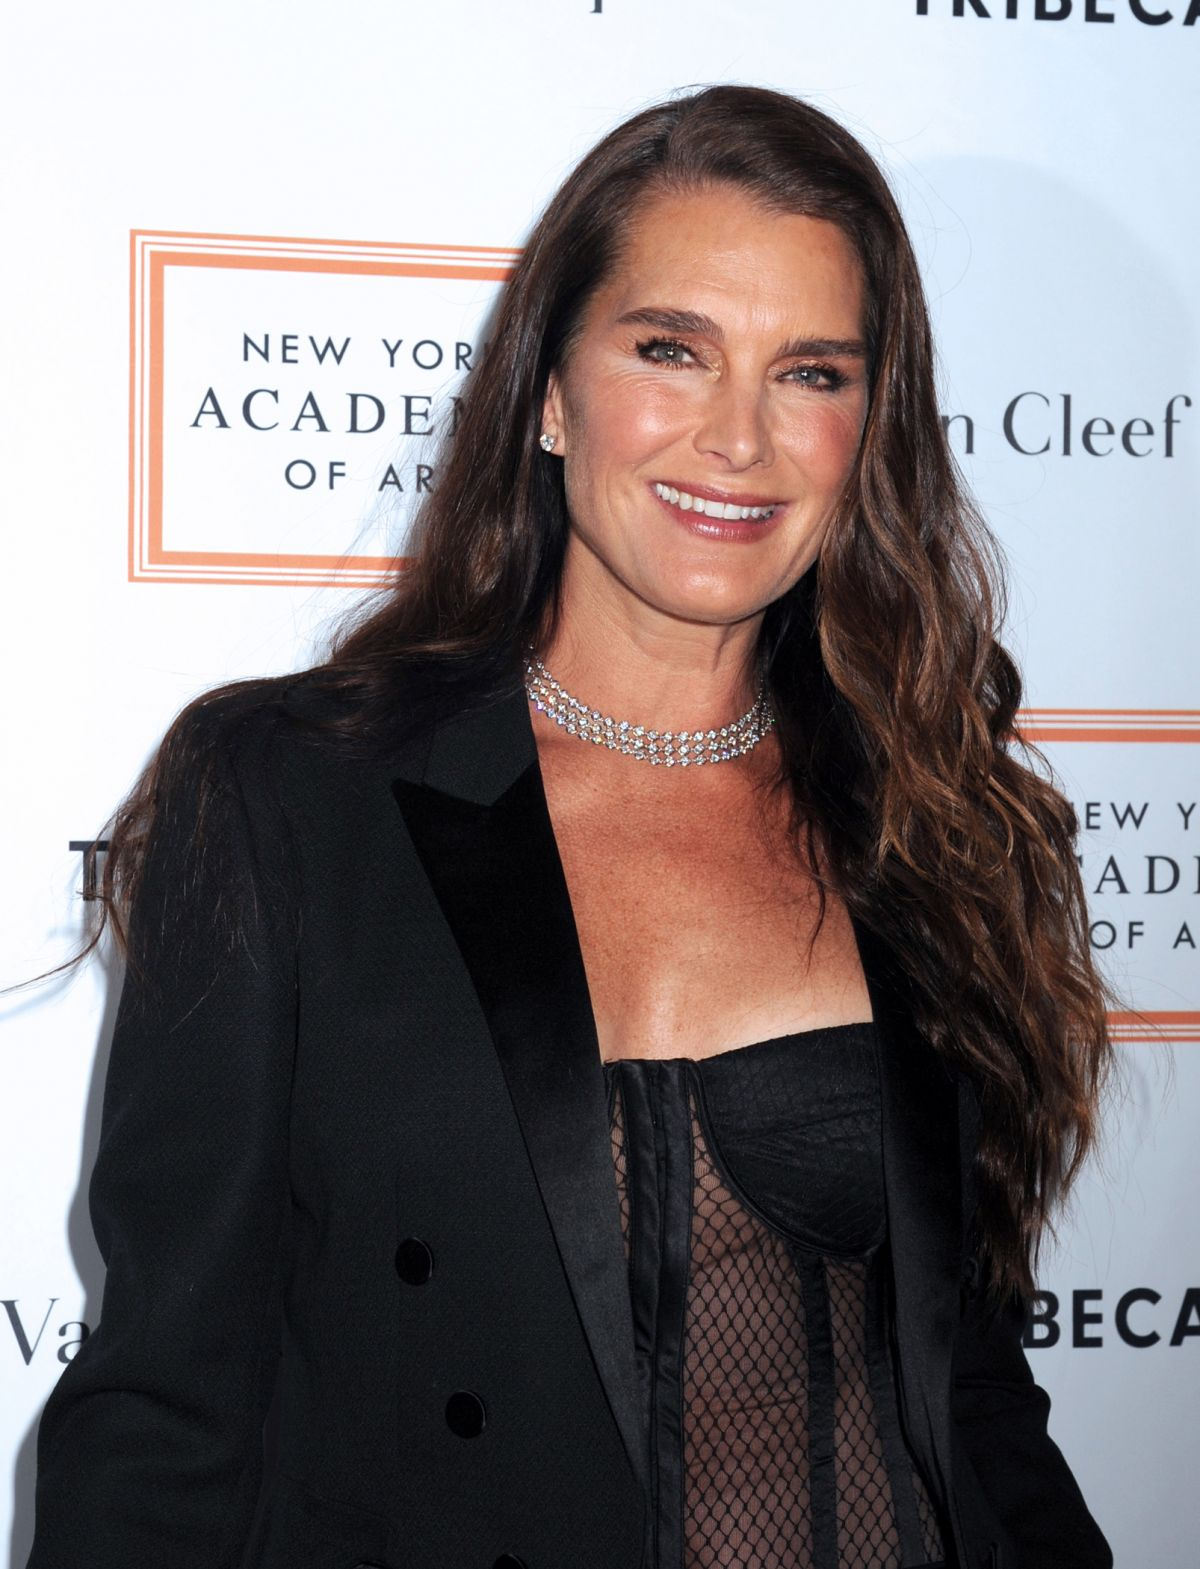 Brooke Shields naked (94 photo) Tits, iCloud, lingerie